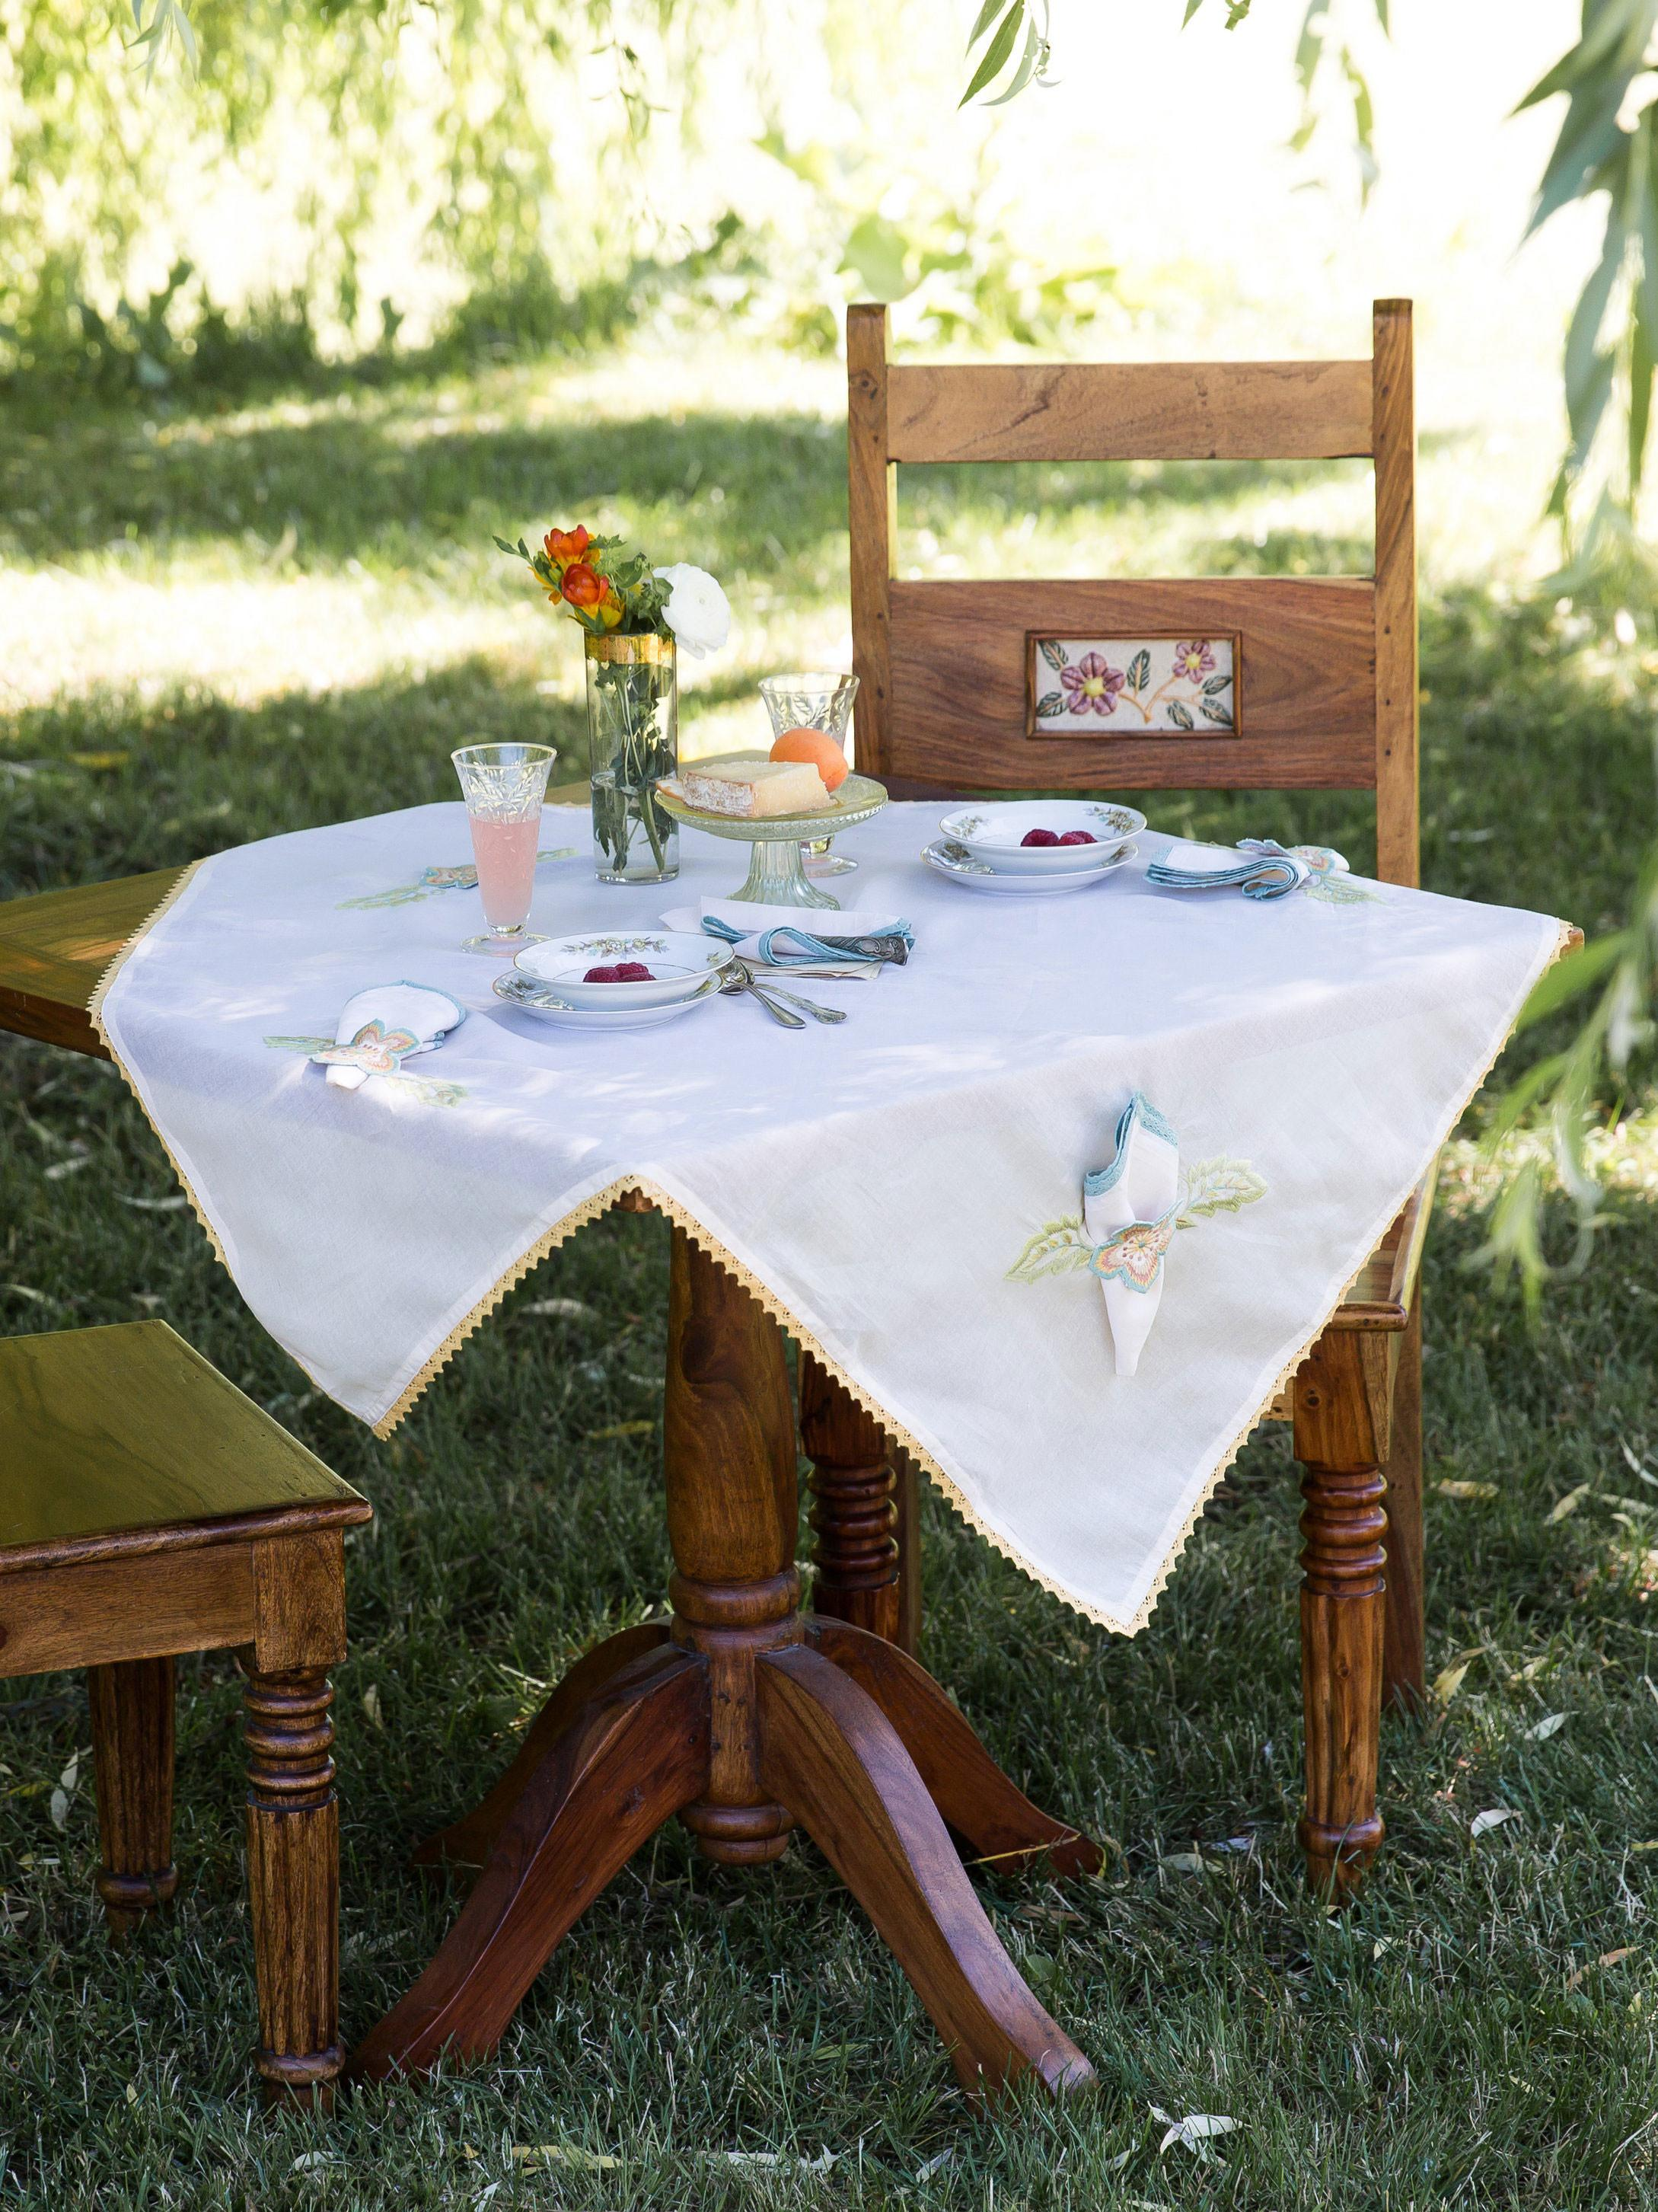 Bridge Party Embroidered Tablecloth Set Linens Kitchen